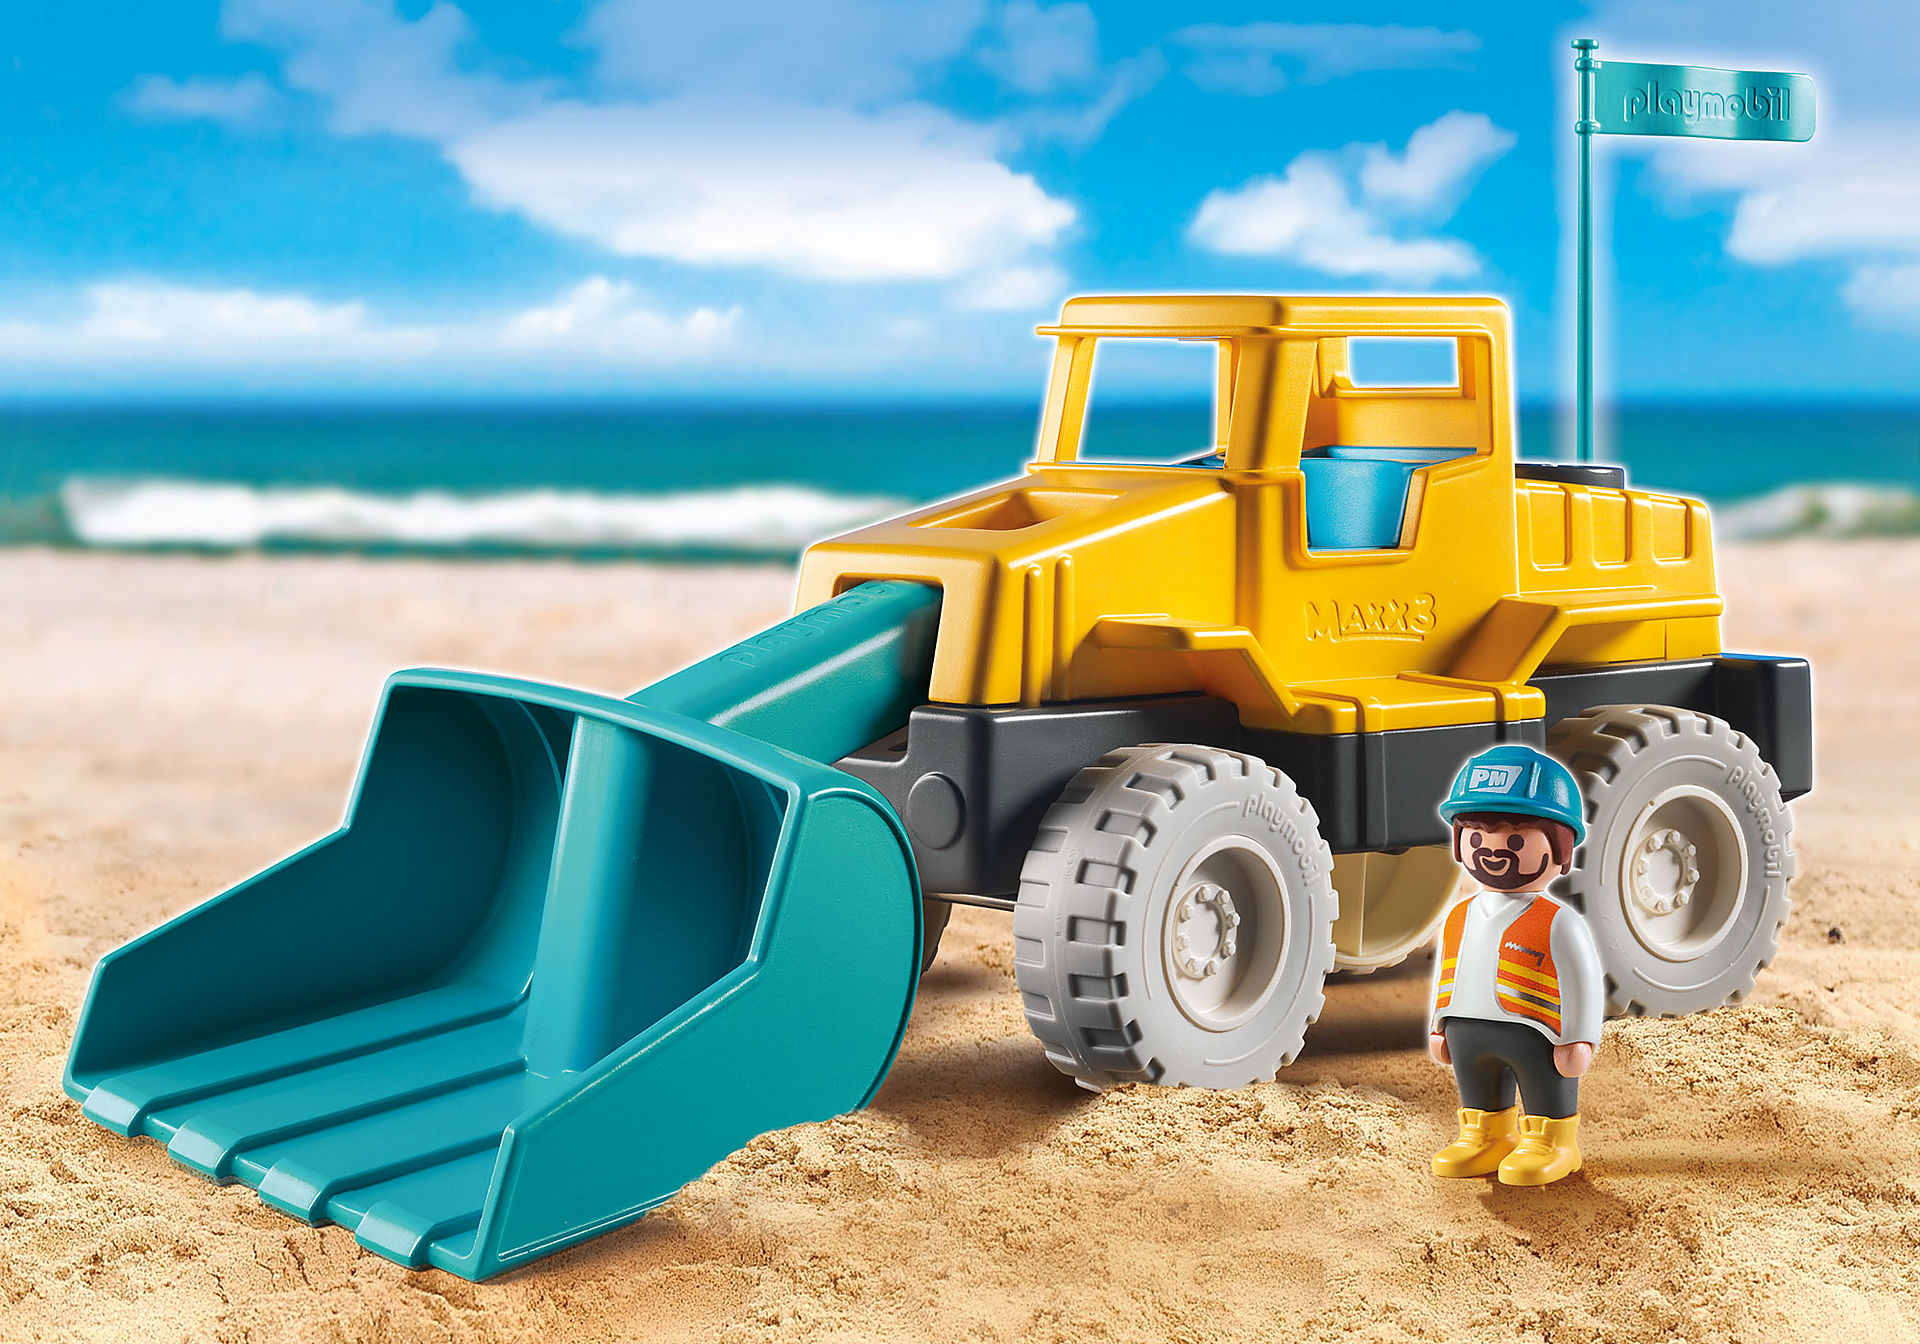 http://media.playmobil.com/i/playmobil/9145_product_detail/Excavator